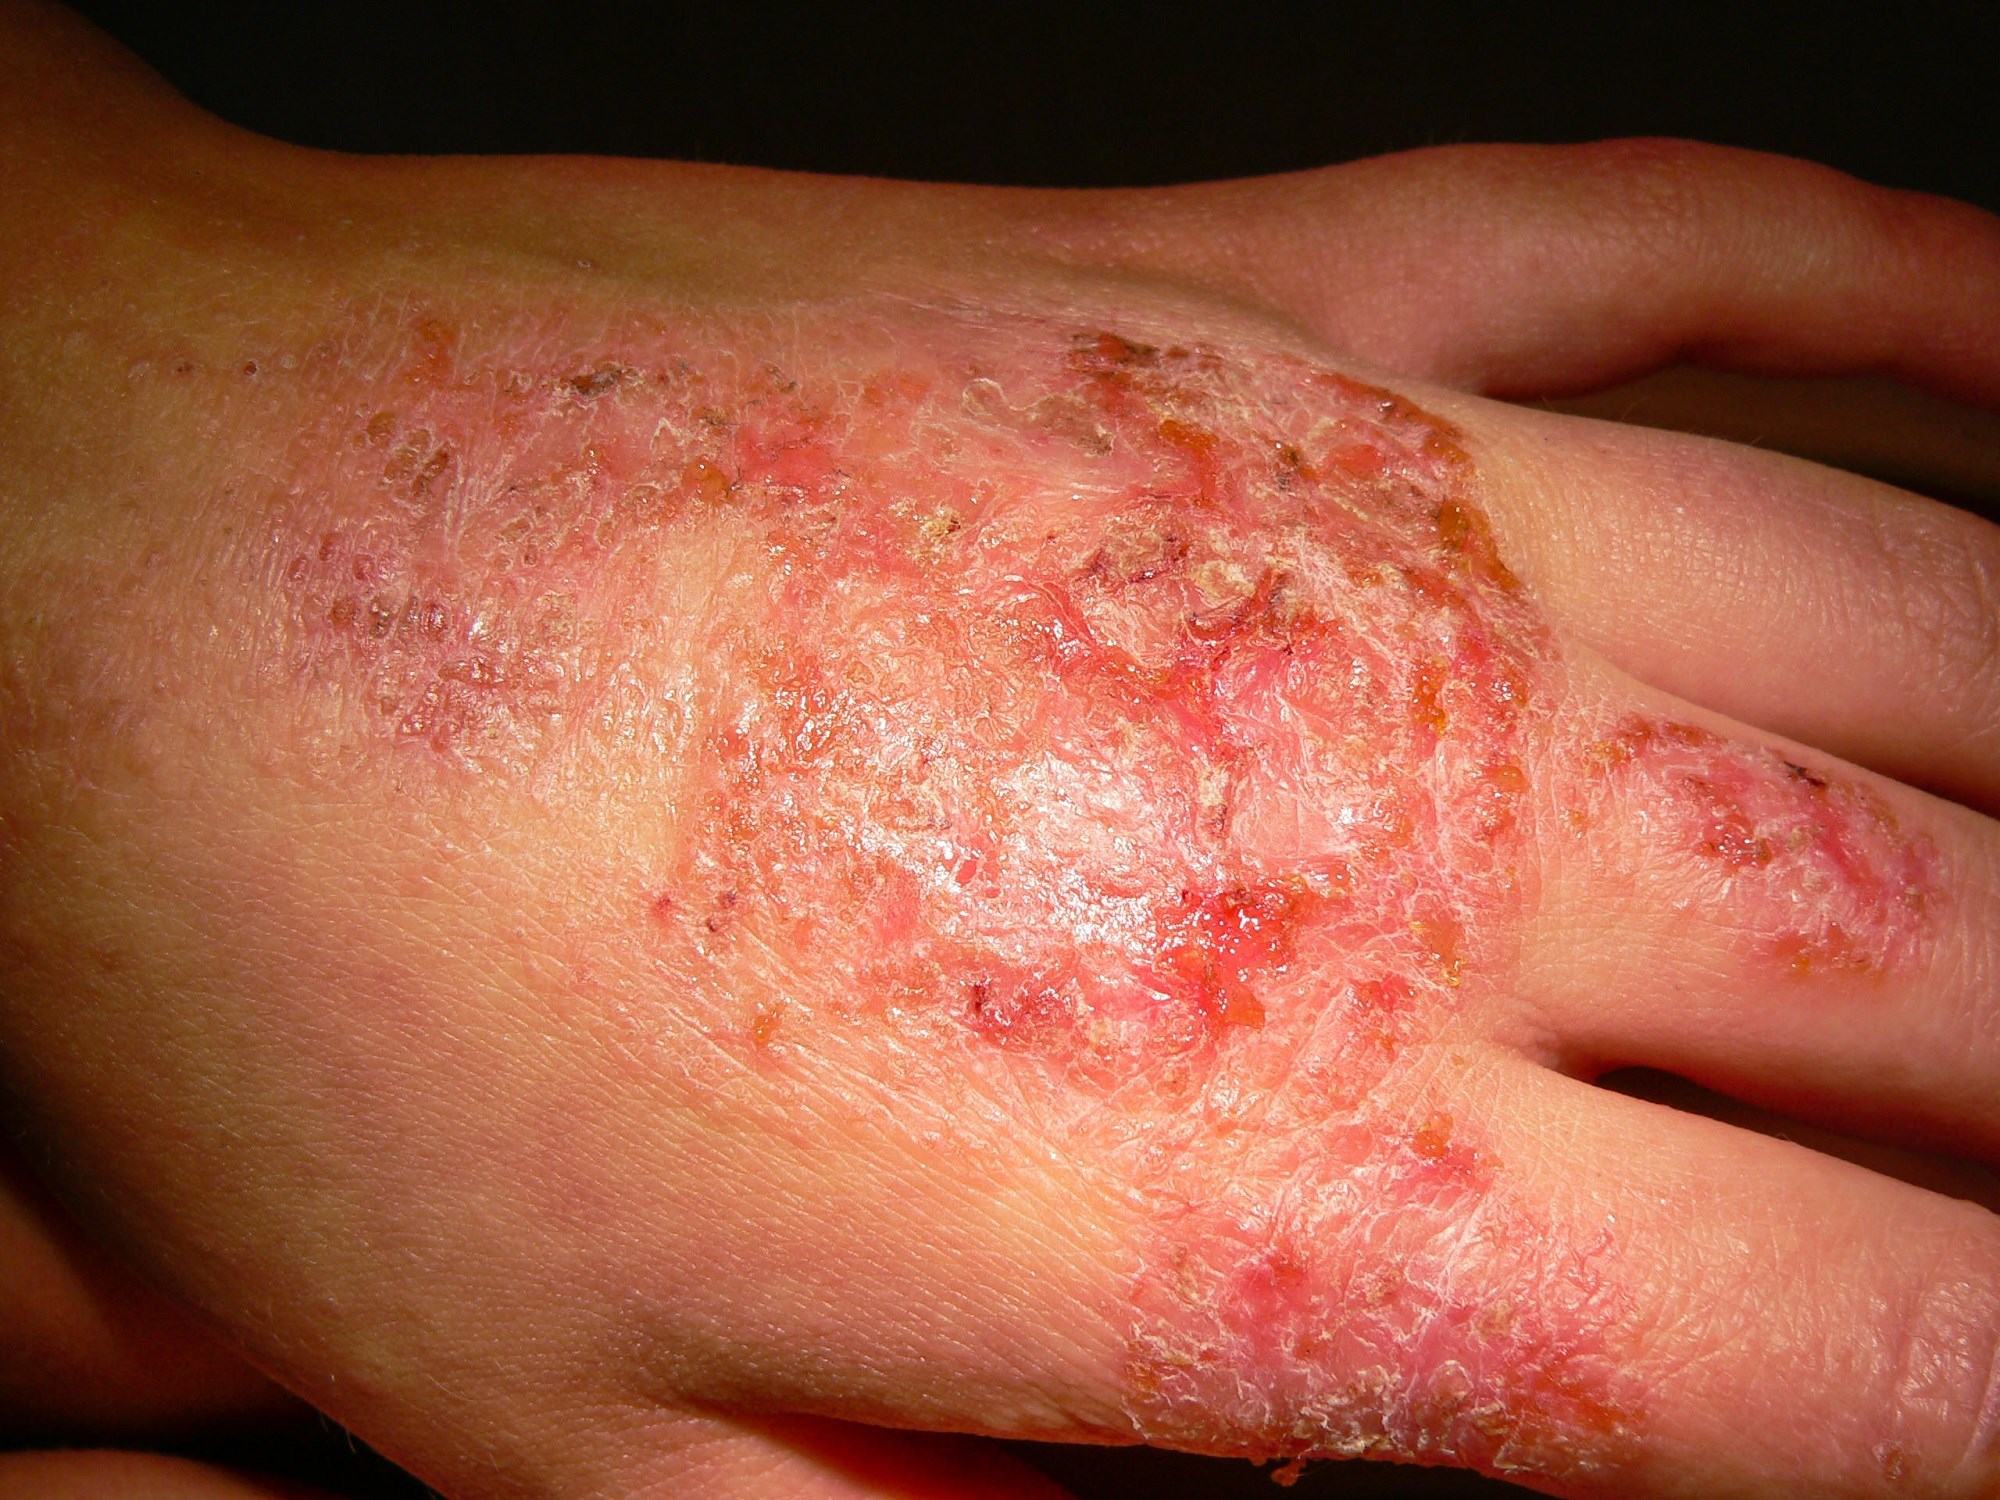 Dupilumab for Atopic Dermatitis: Is the Increased Cost Worth It?